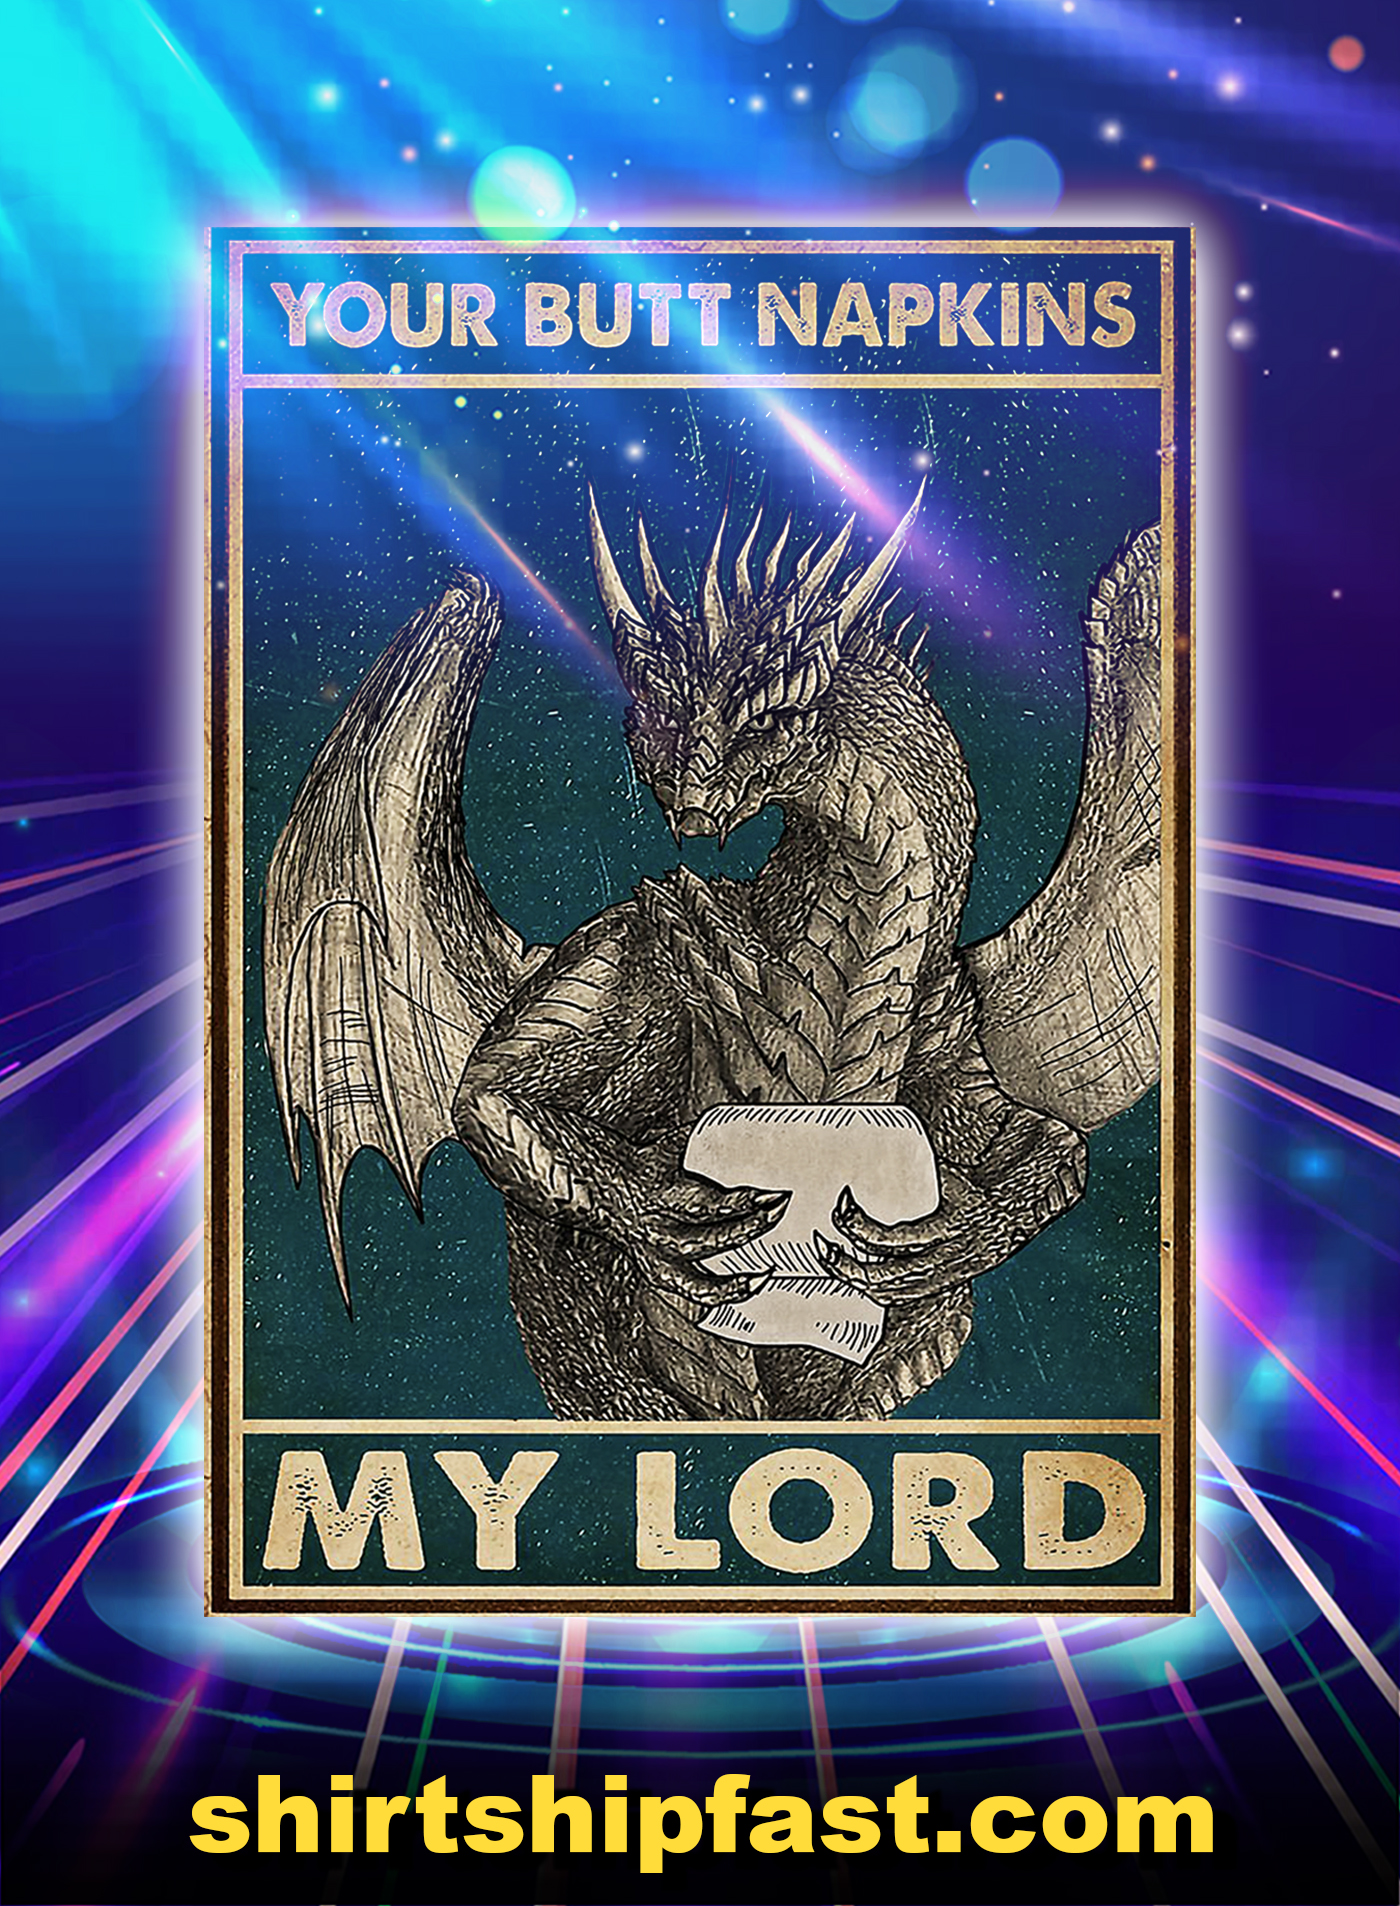 Dragon toilet paper your butt napkins my lord poster - A1